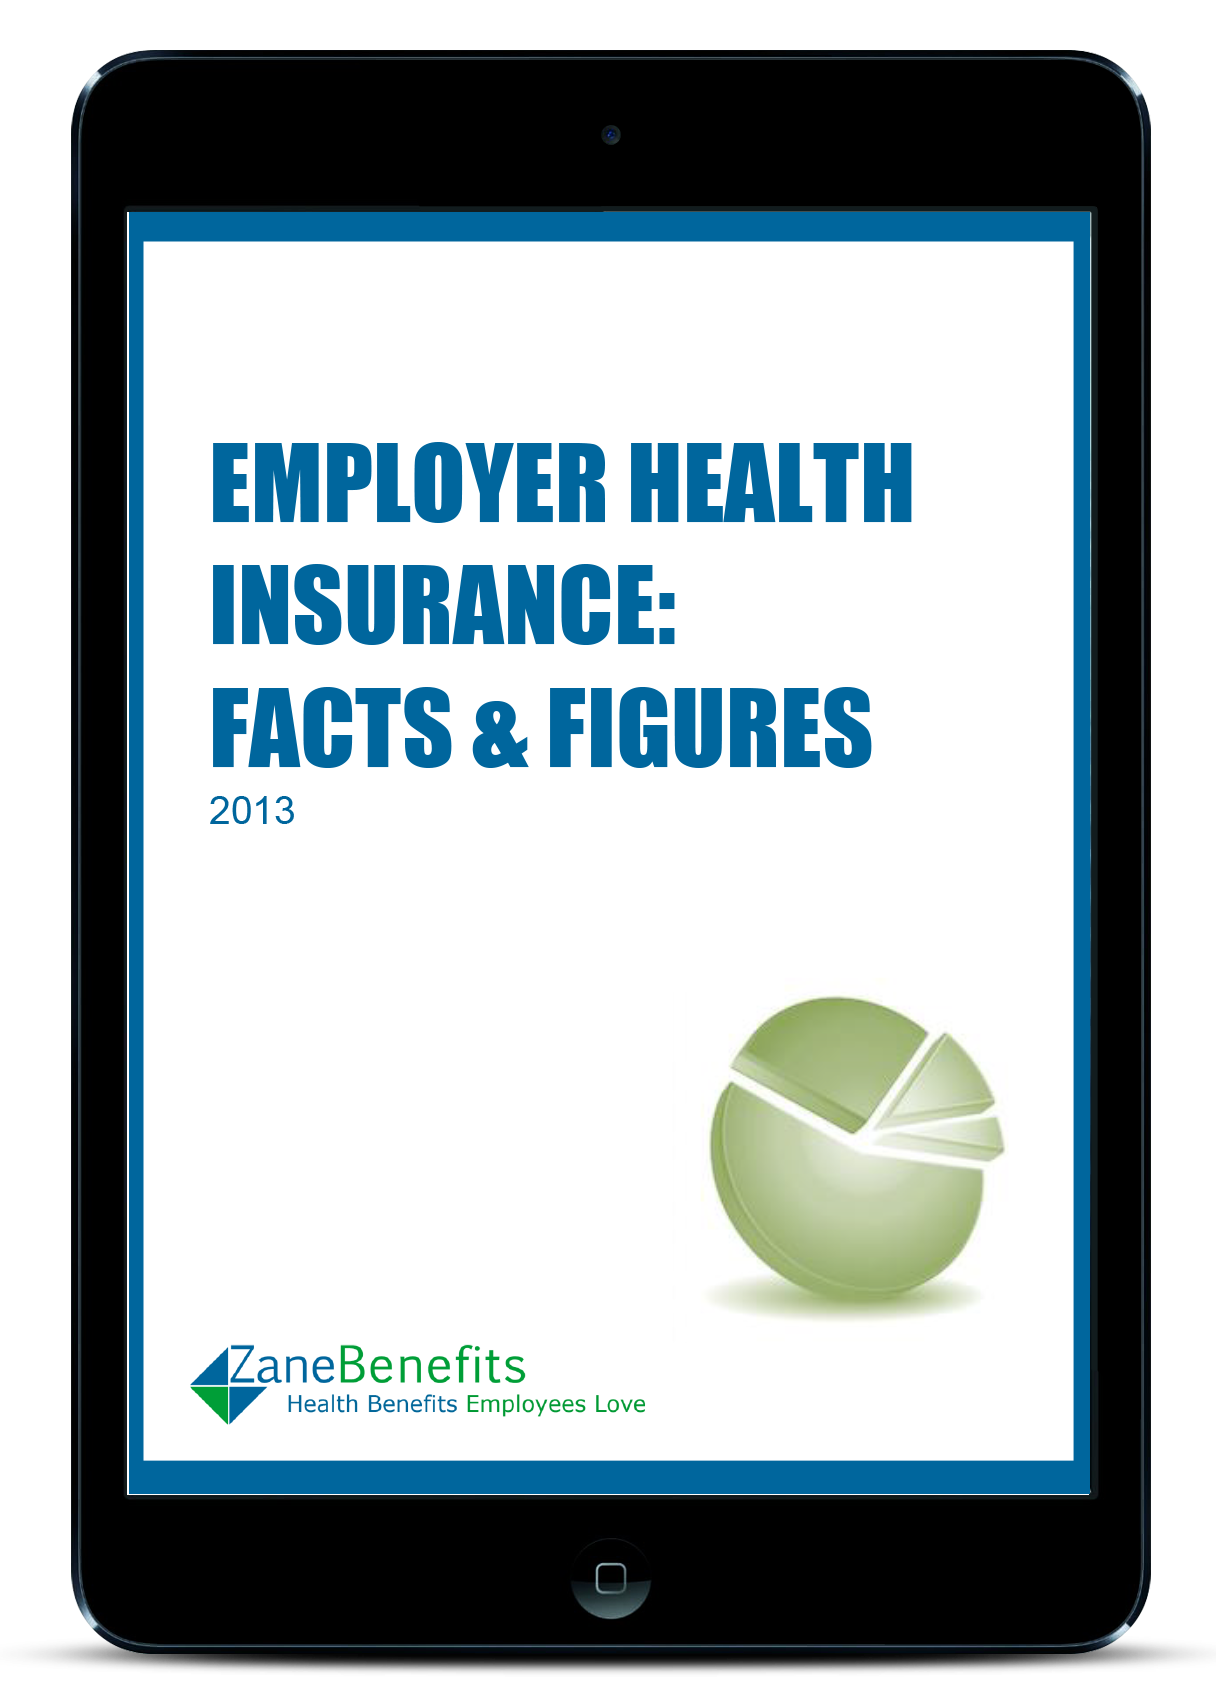 Employer Health Insurance: Facts and Figures 2013